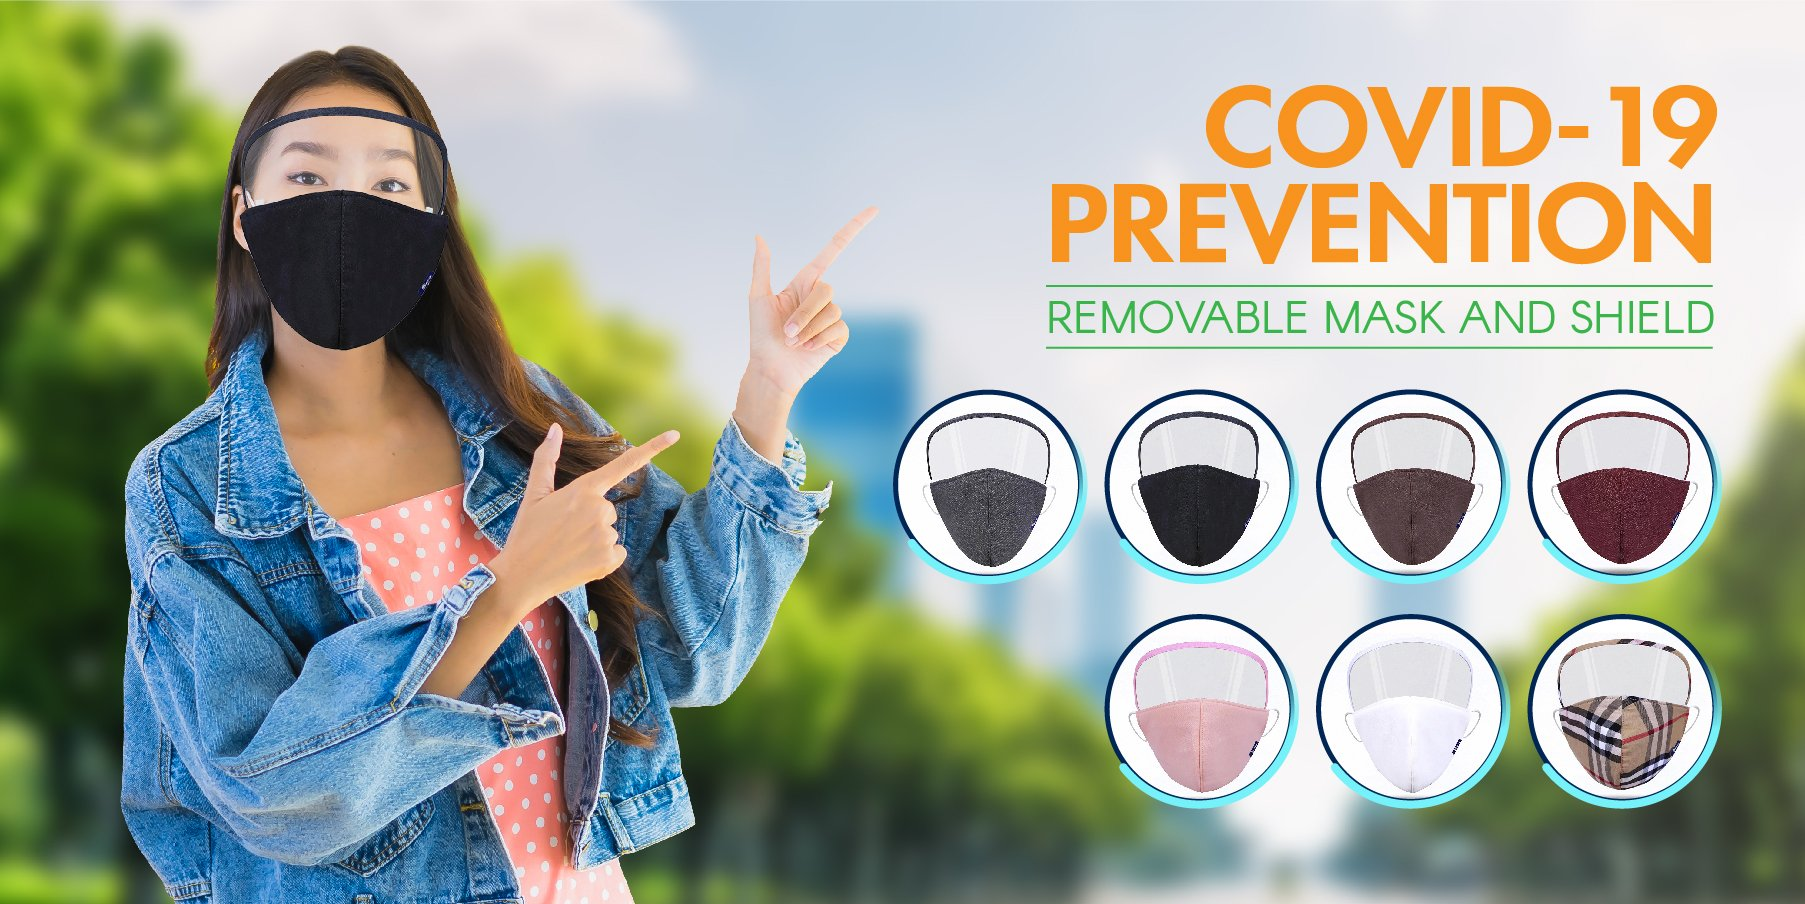 Protect Yourself and Your Customer Removable Mask and Shield